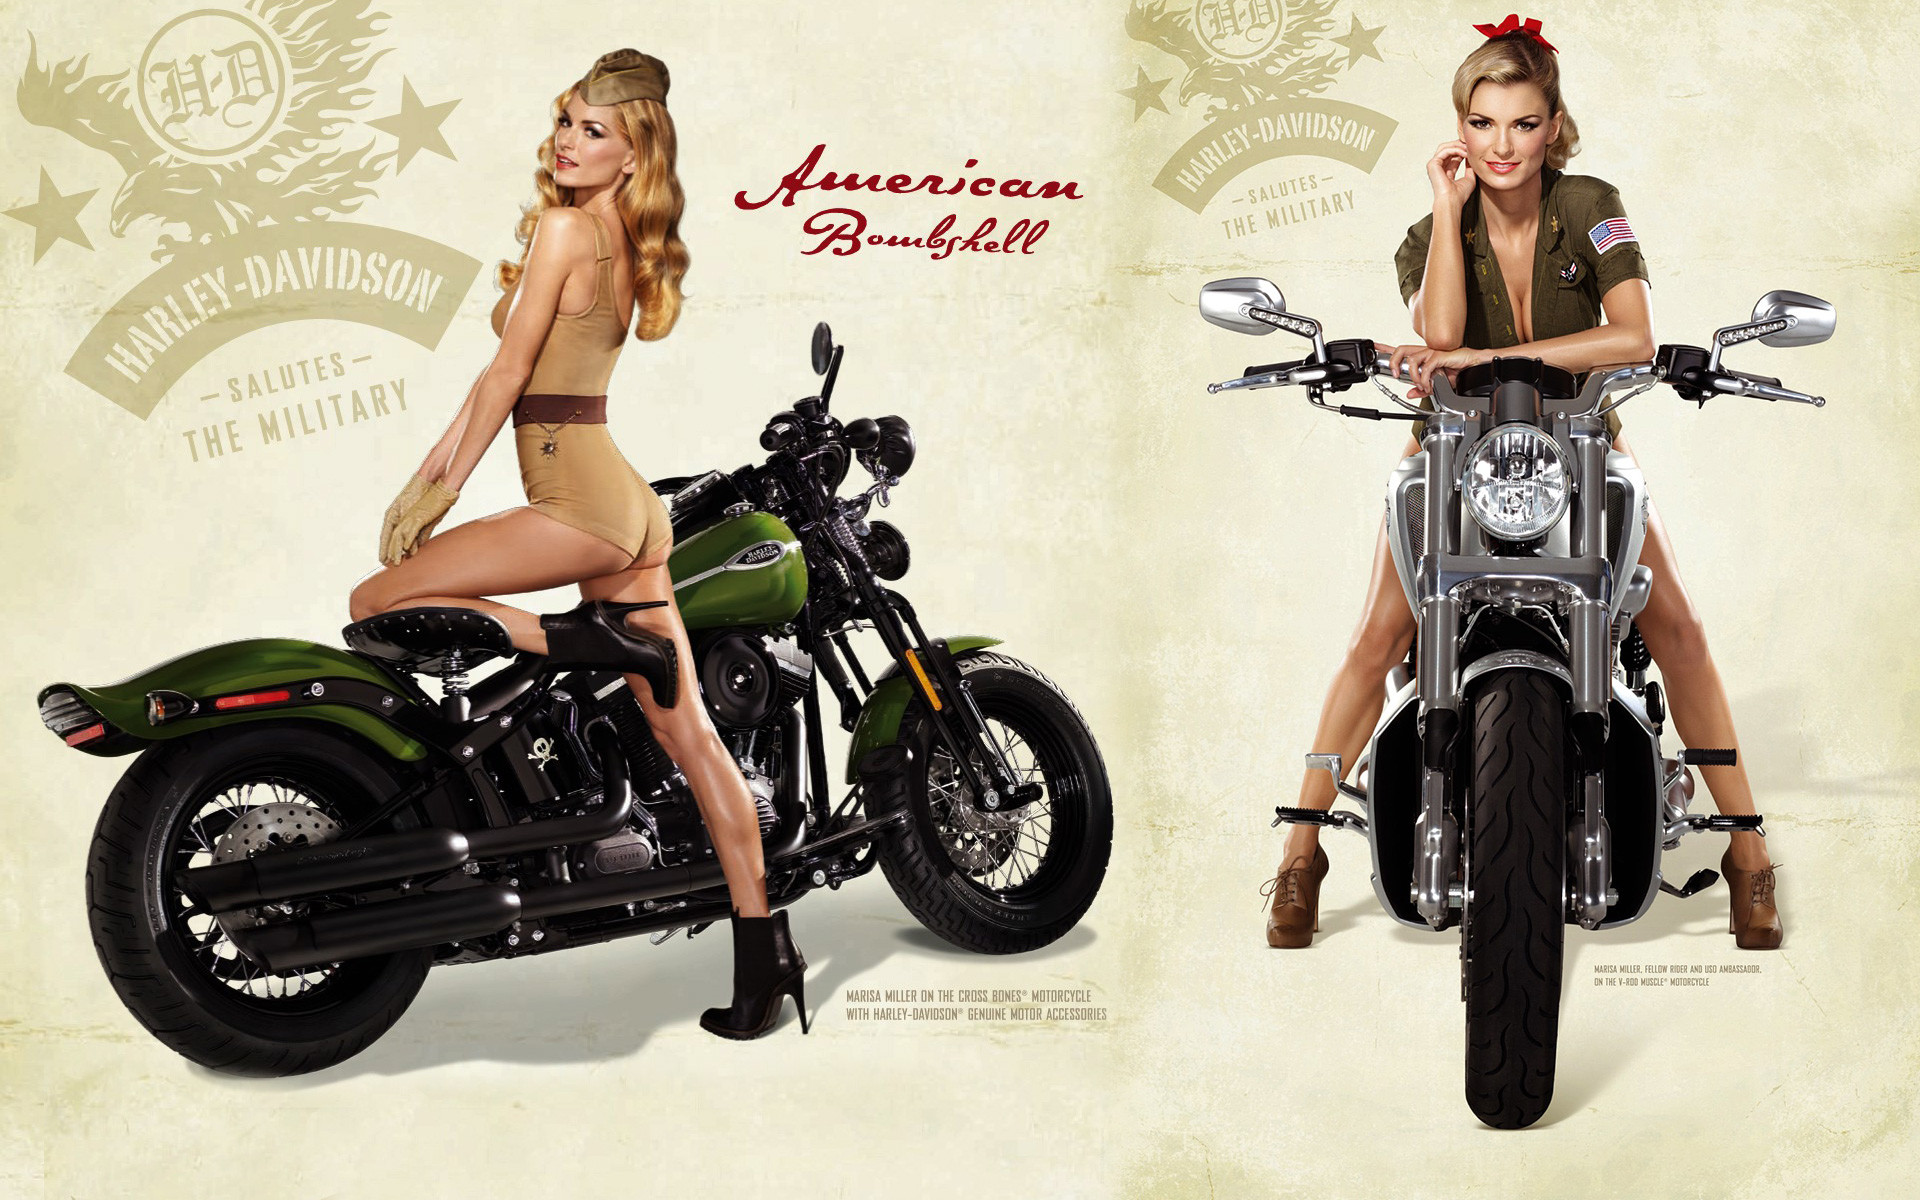 Military girl wallpaper hd wallpaper girl source military pin up wallpaper 54 images sciox Image collections